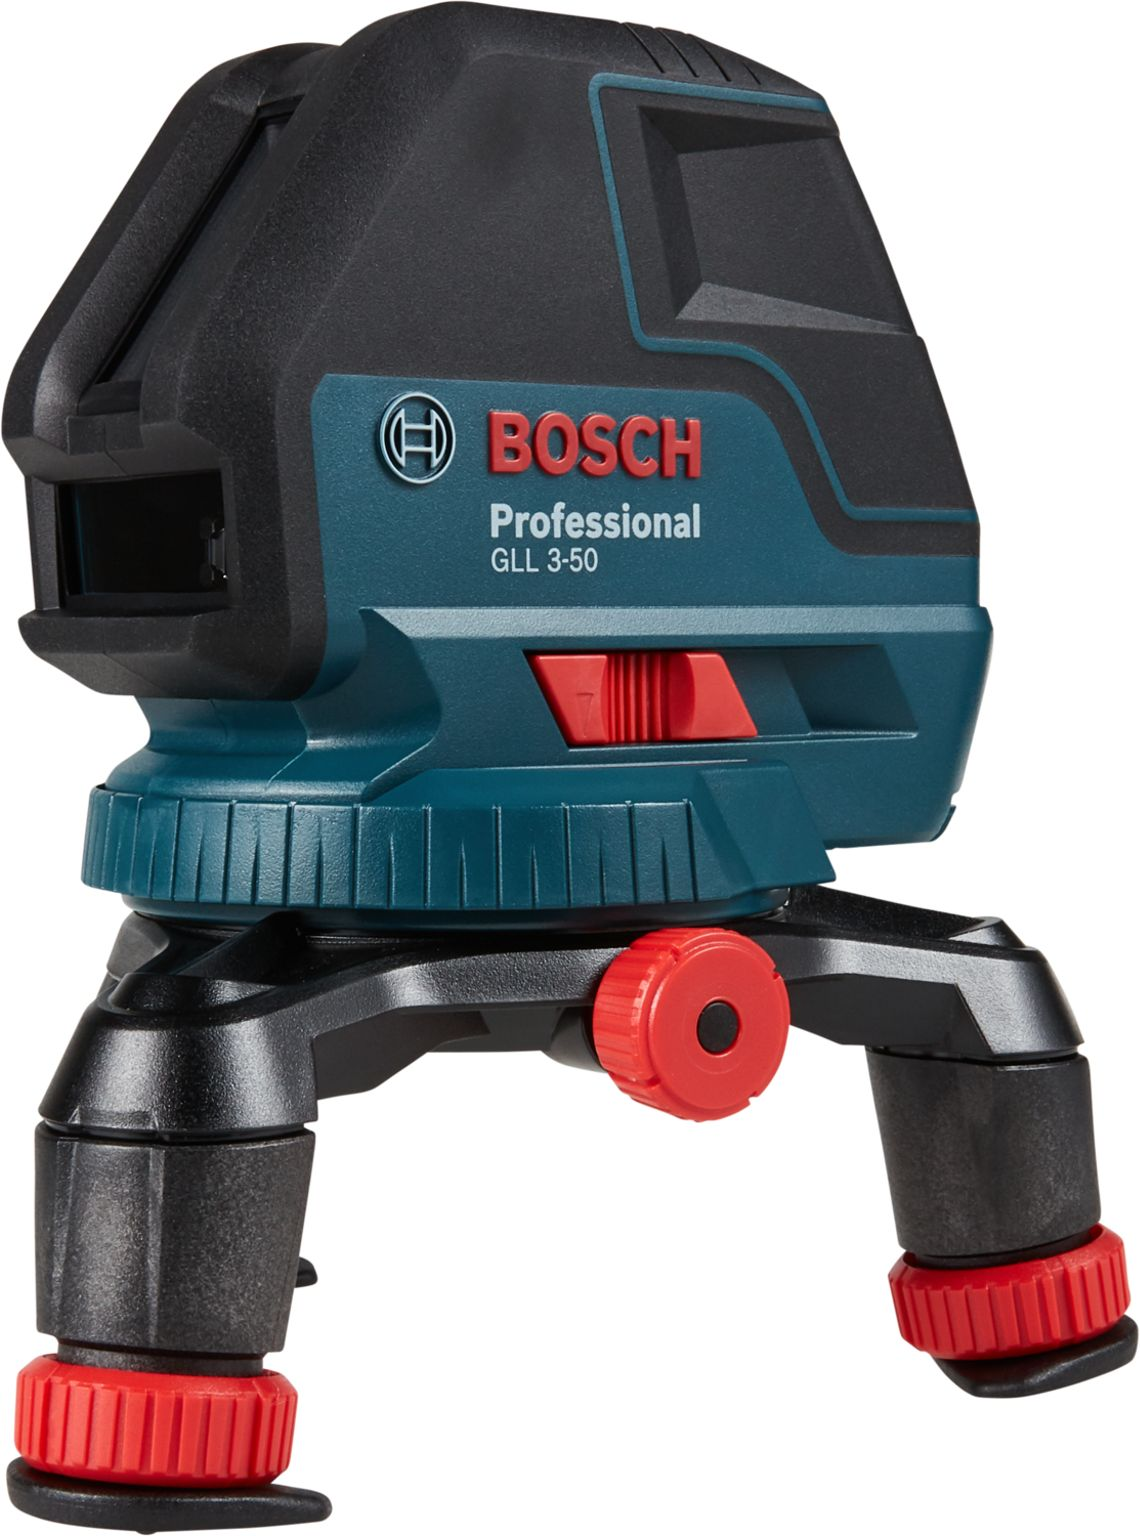 BOSCH PROFESSIONAL Linienlaser GLL 3- 50 Professional